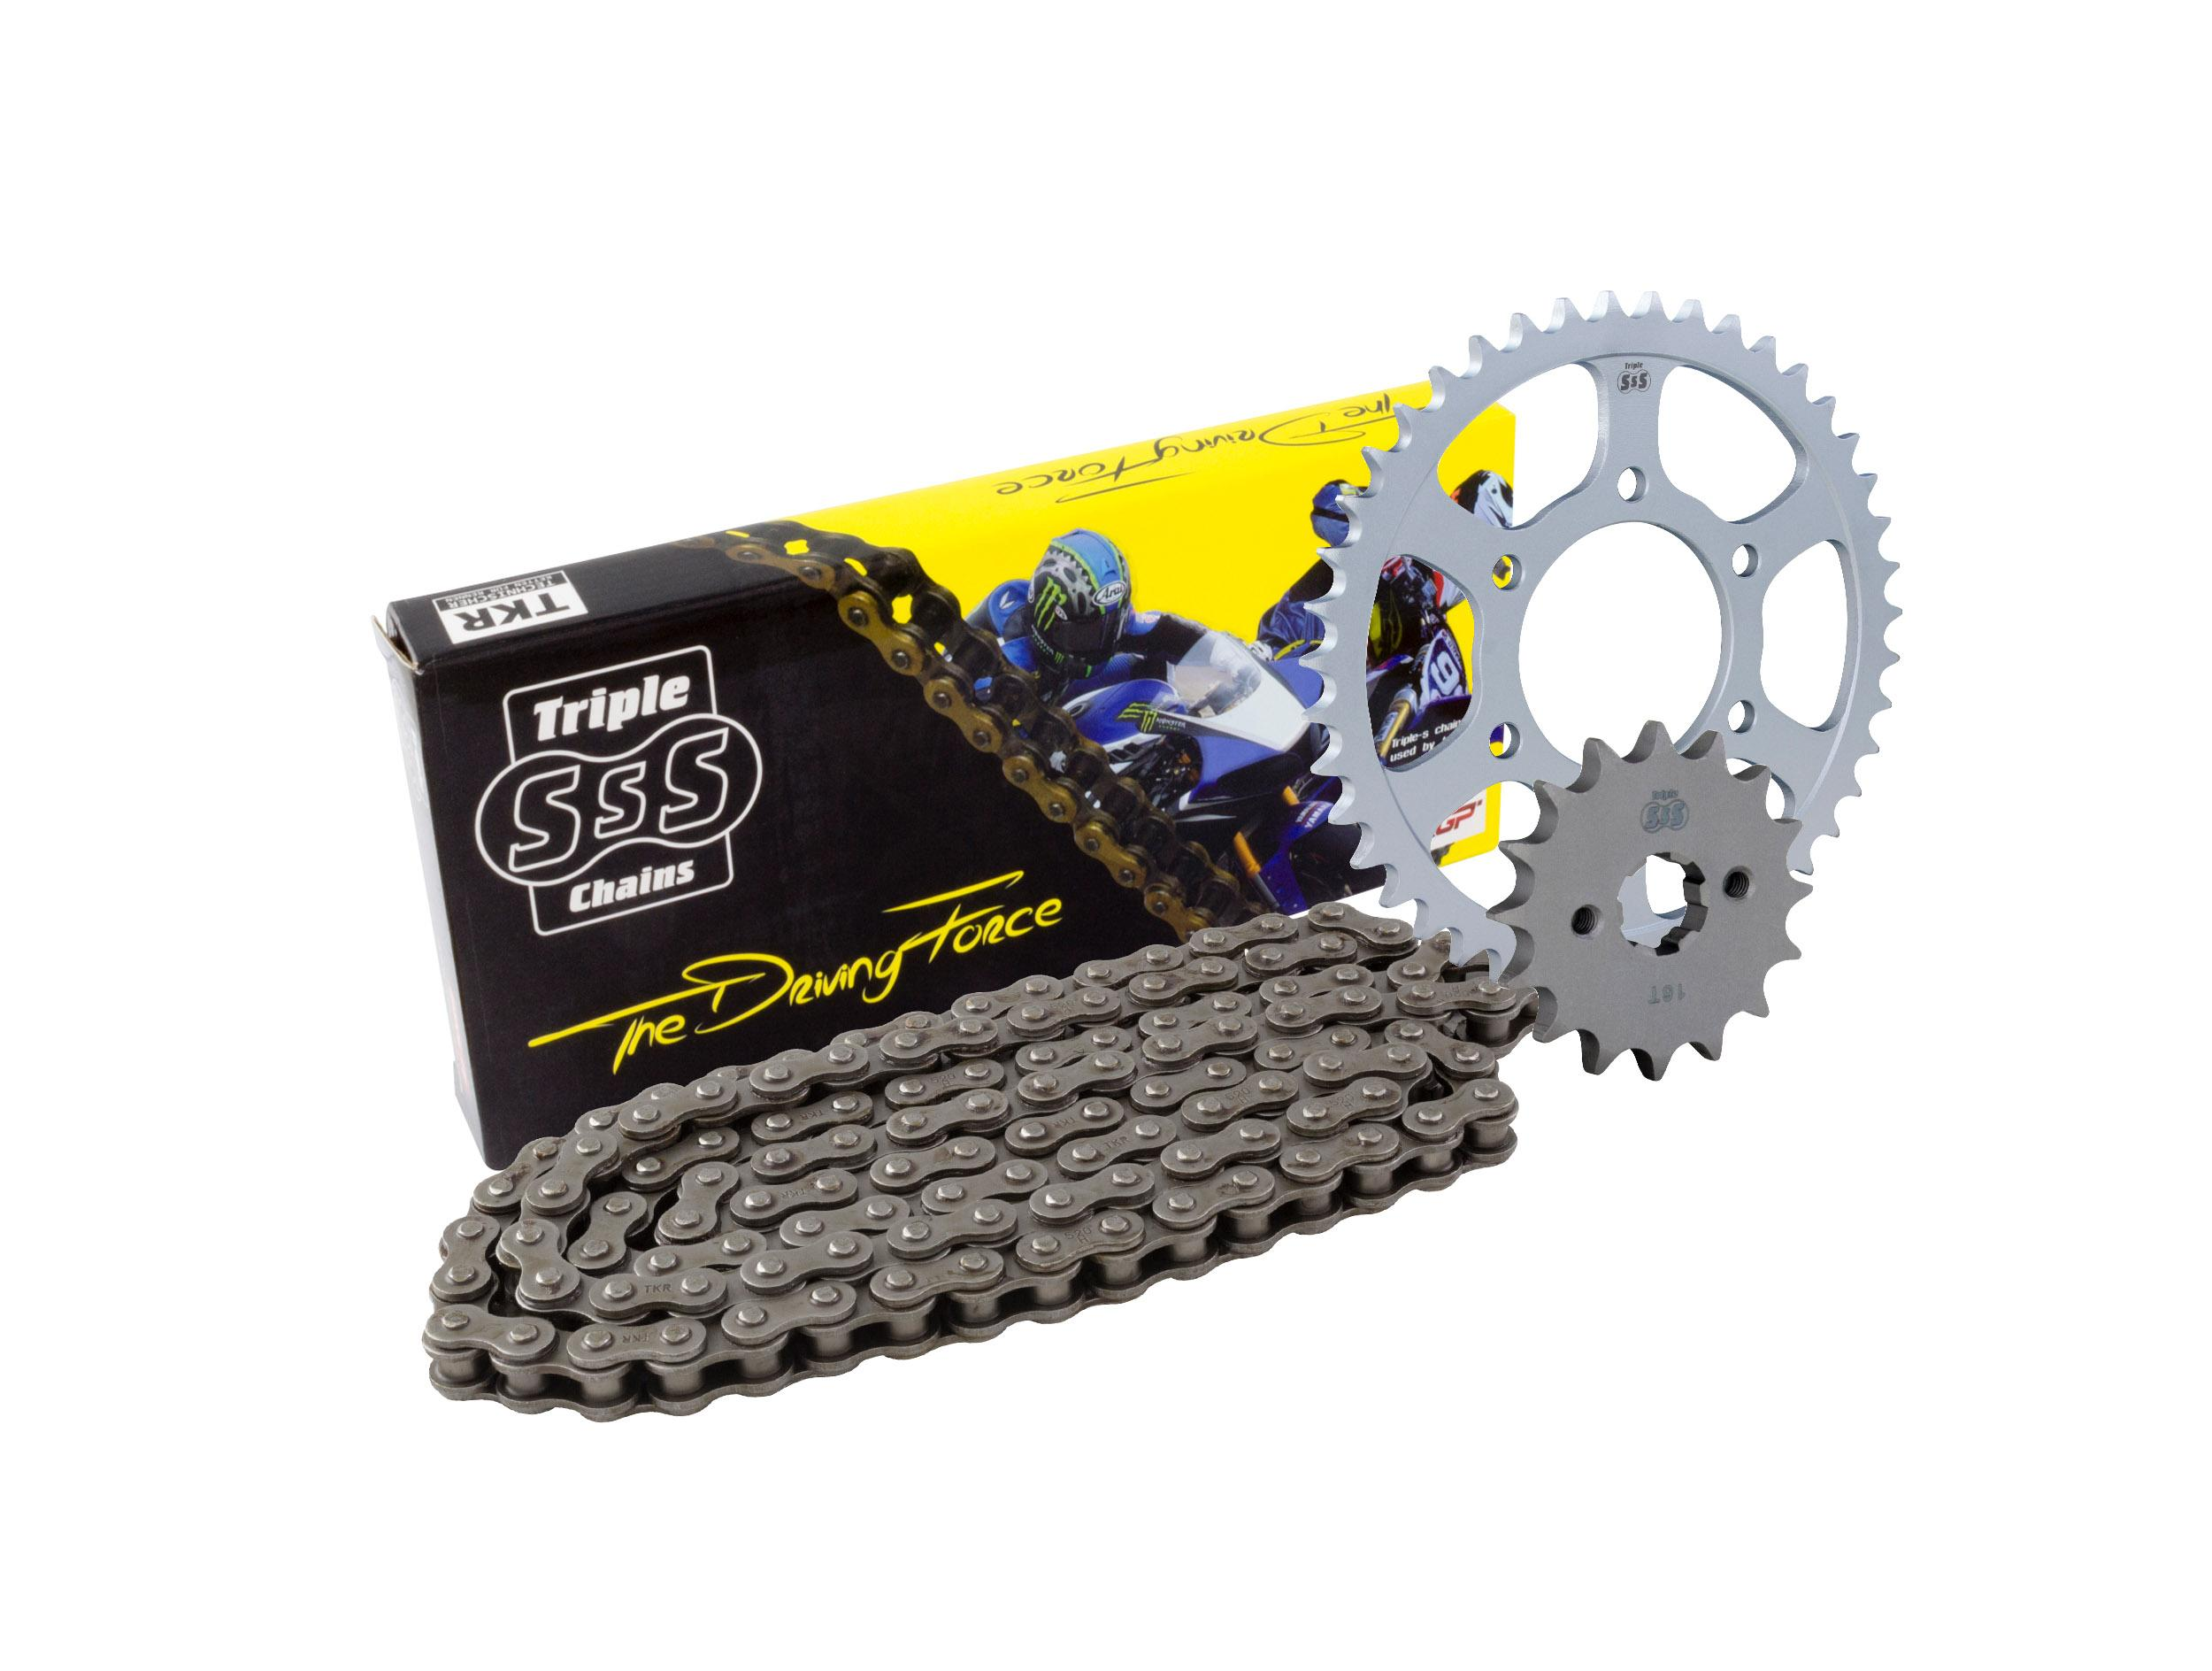 Yamaha YBR250 07-10 Chain & Sprocket Kit: 15T Front, 44T Rear, HD Chain 428H 132 Link